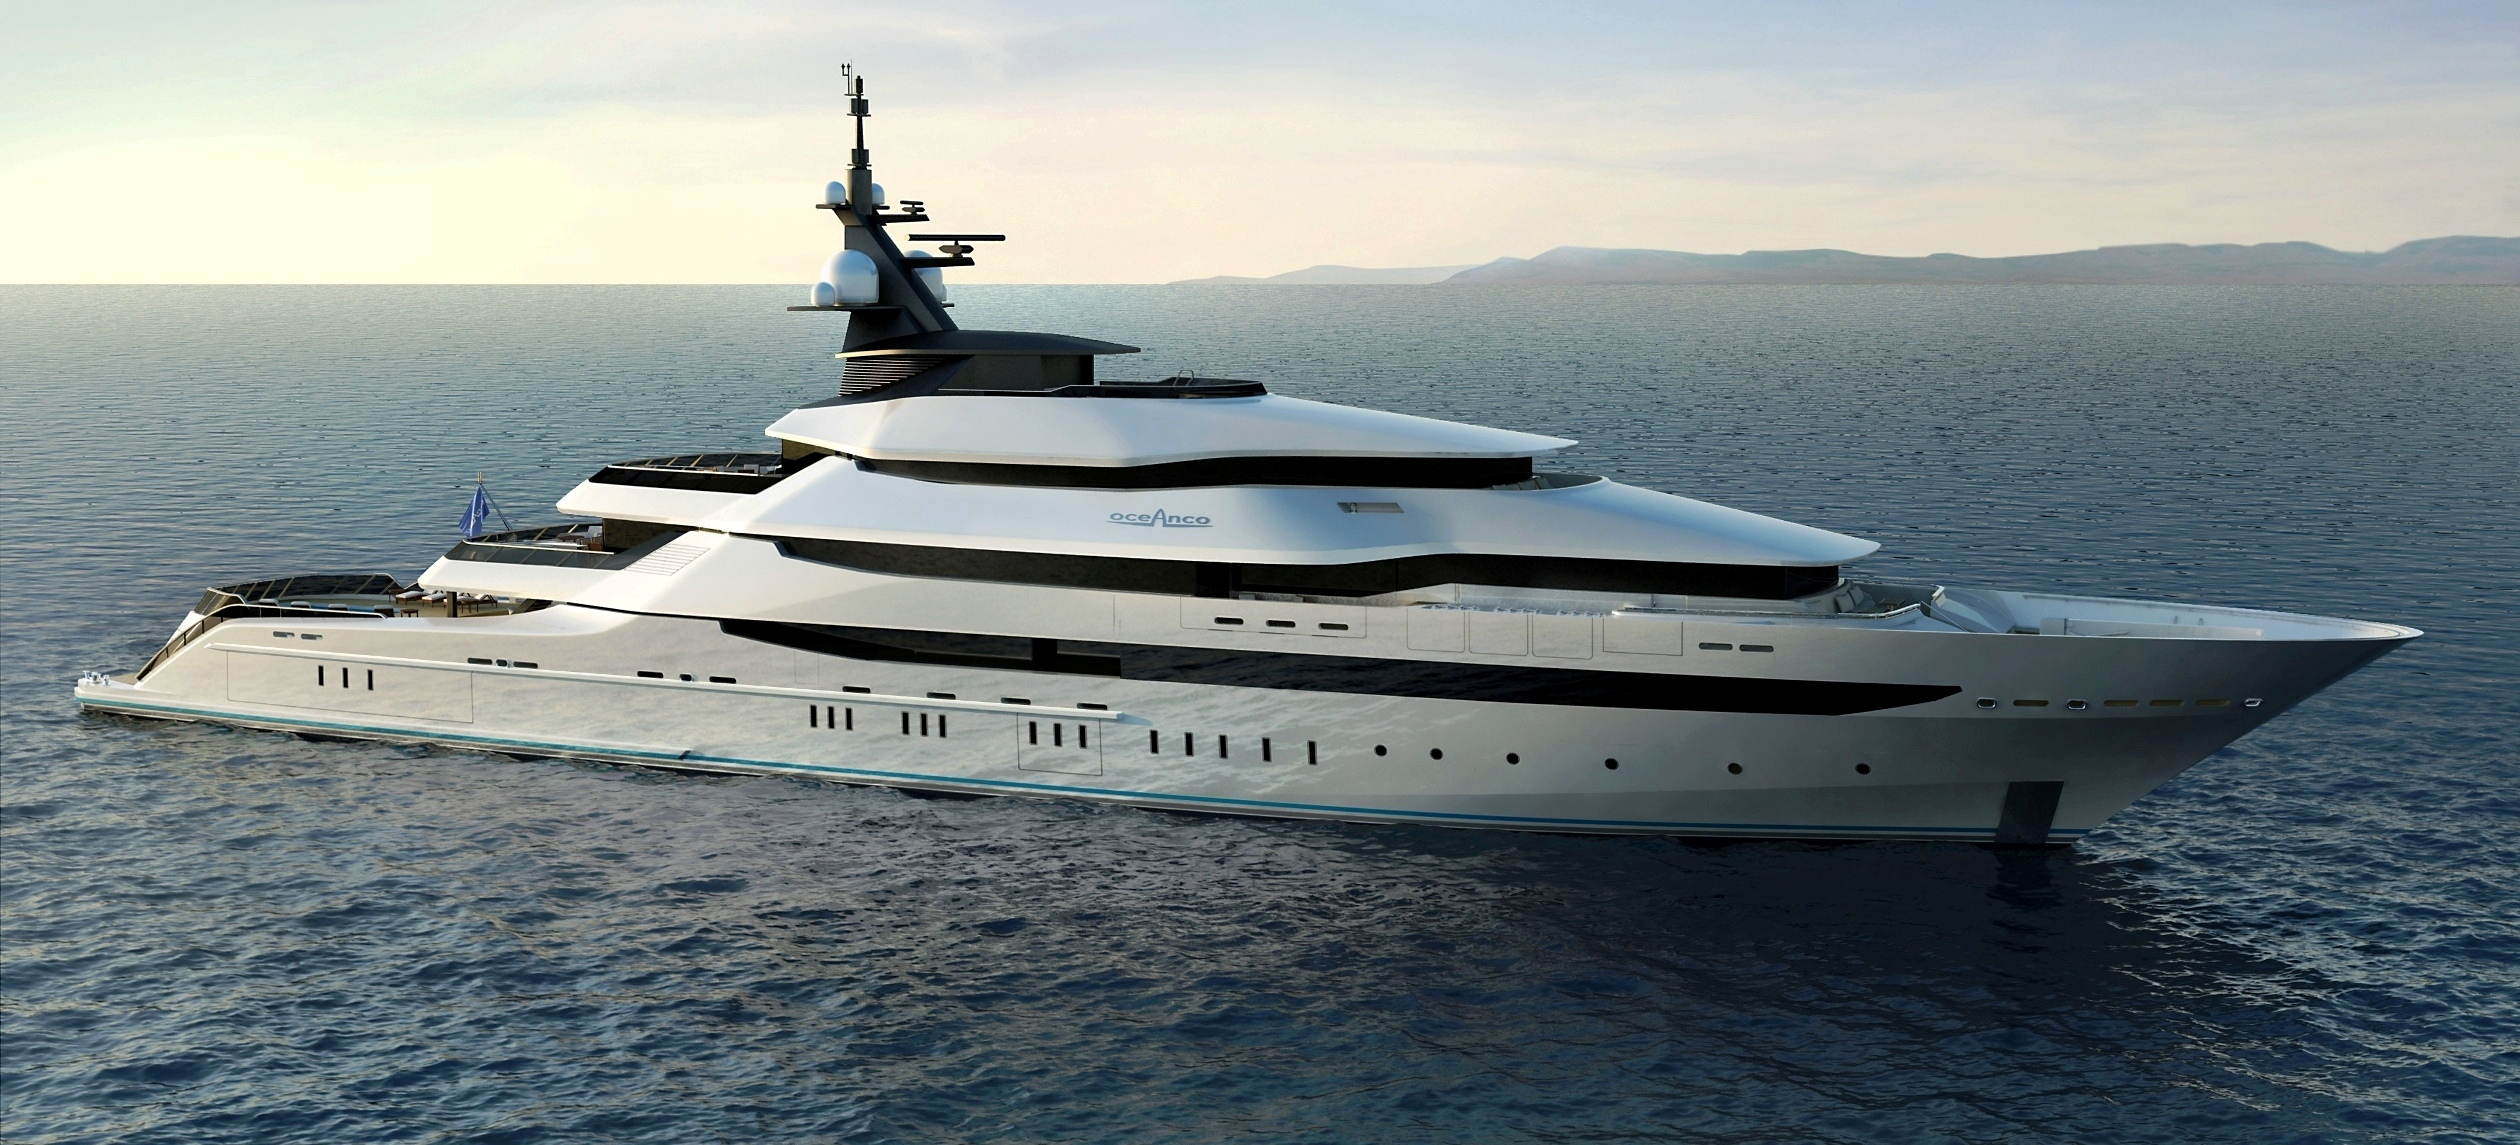 the y708 oceanco yacht design at 85m loa luxury yacht charter